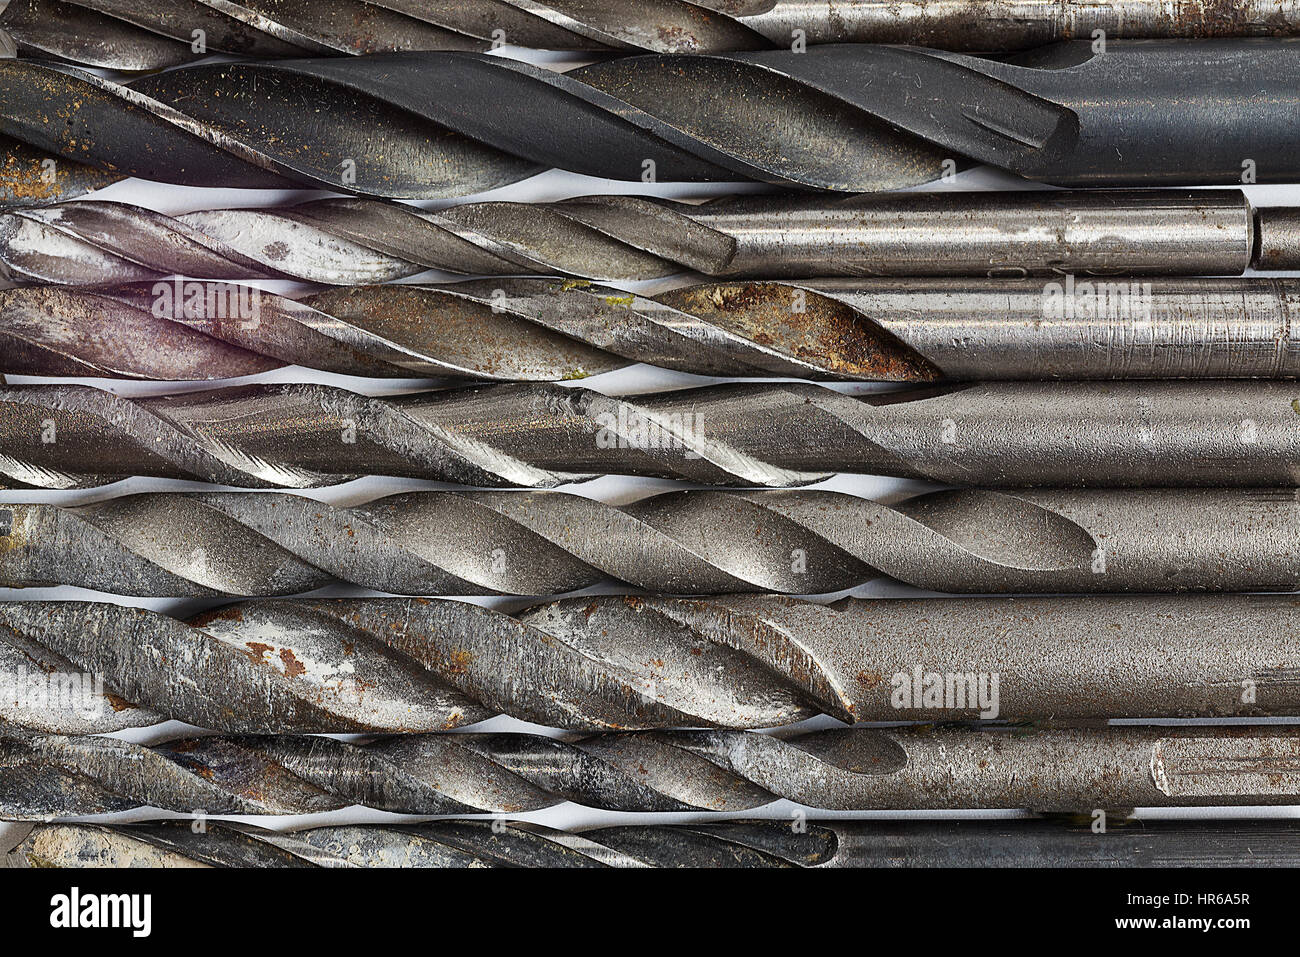 Drill bits for metal surfaces. - Stock Image